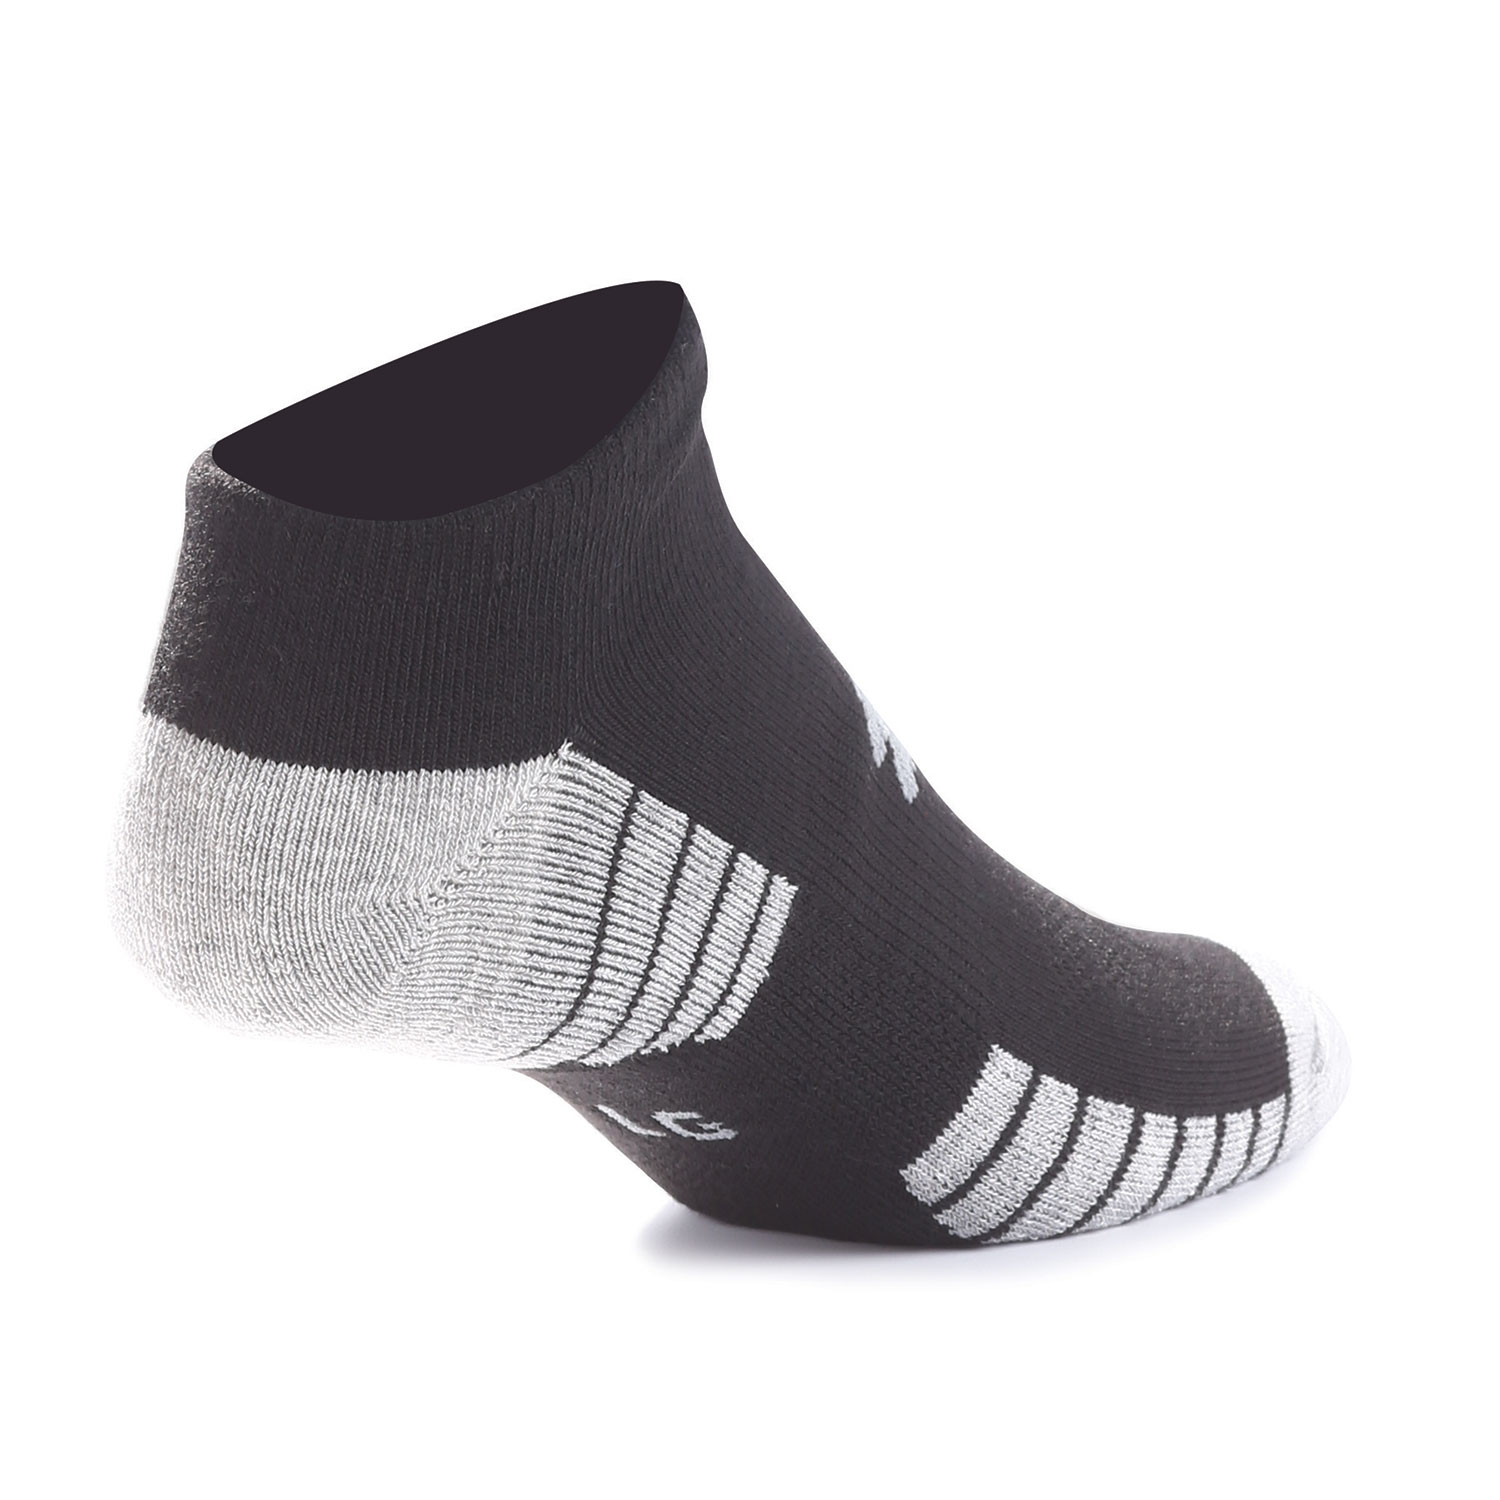 Under Armour HeatGear Tech No Show Socks 3 Pack